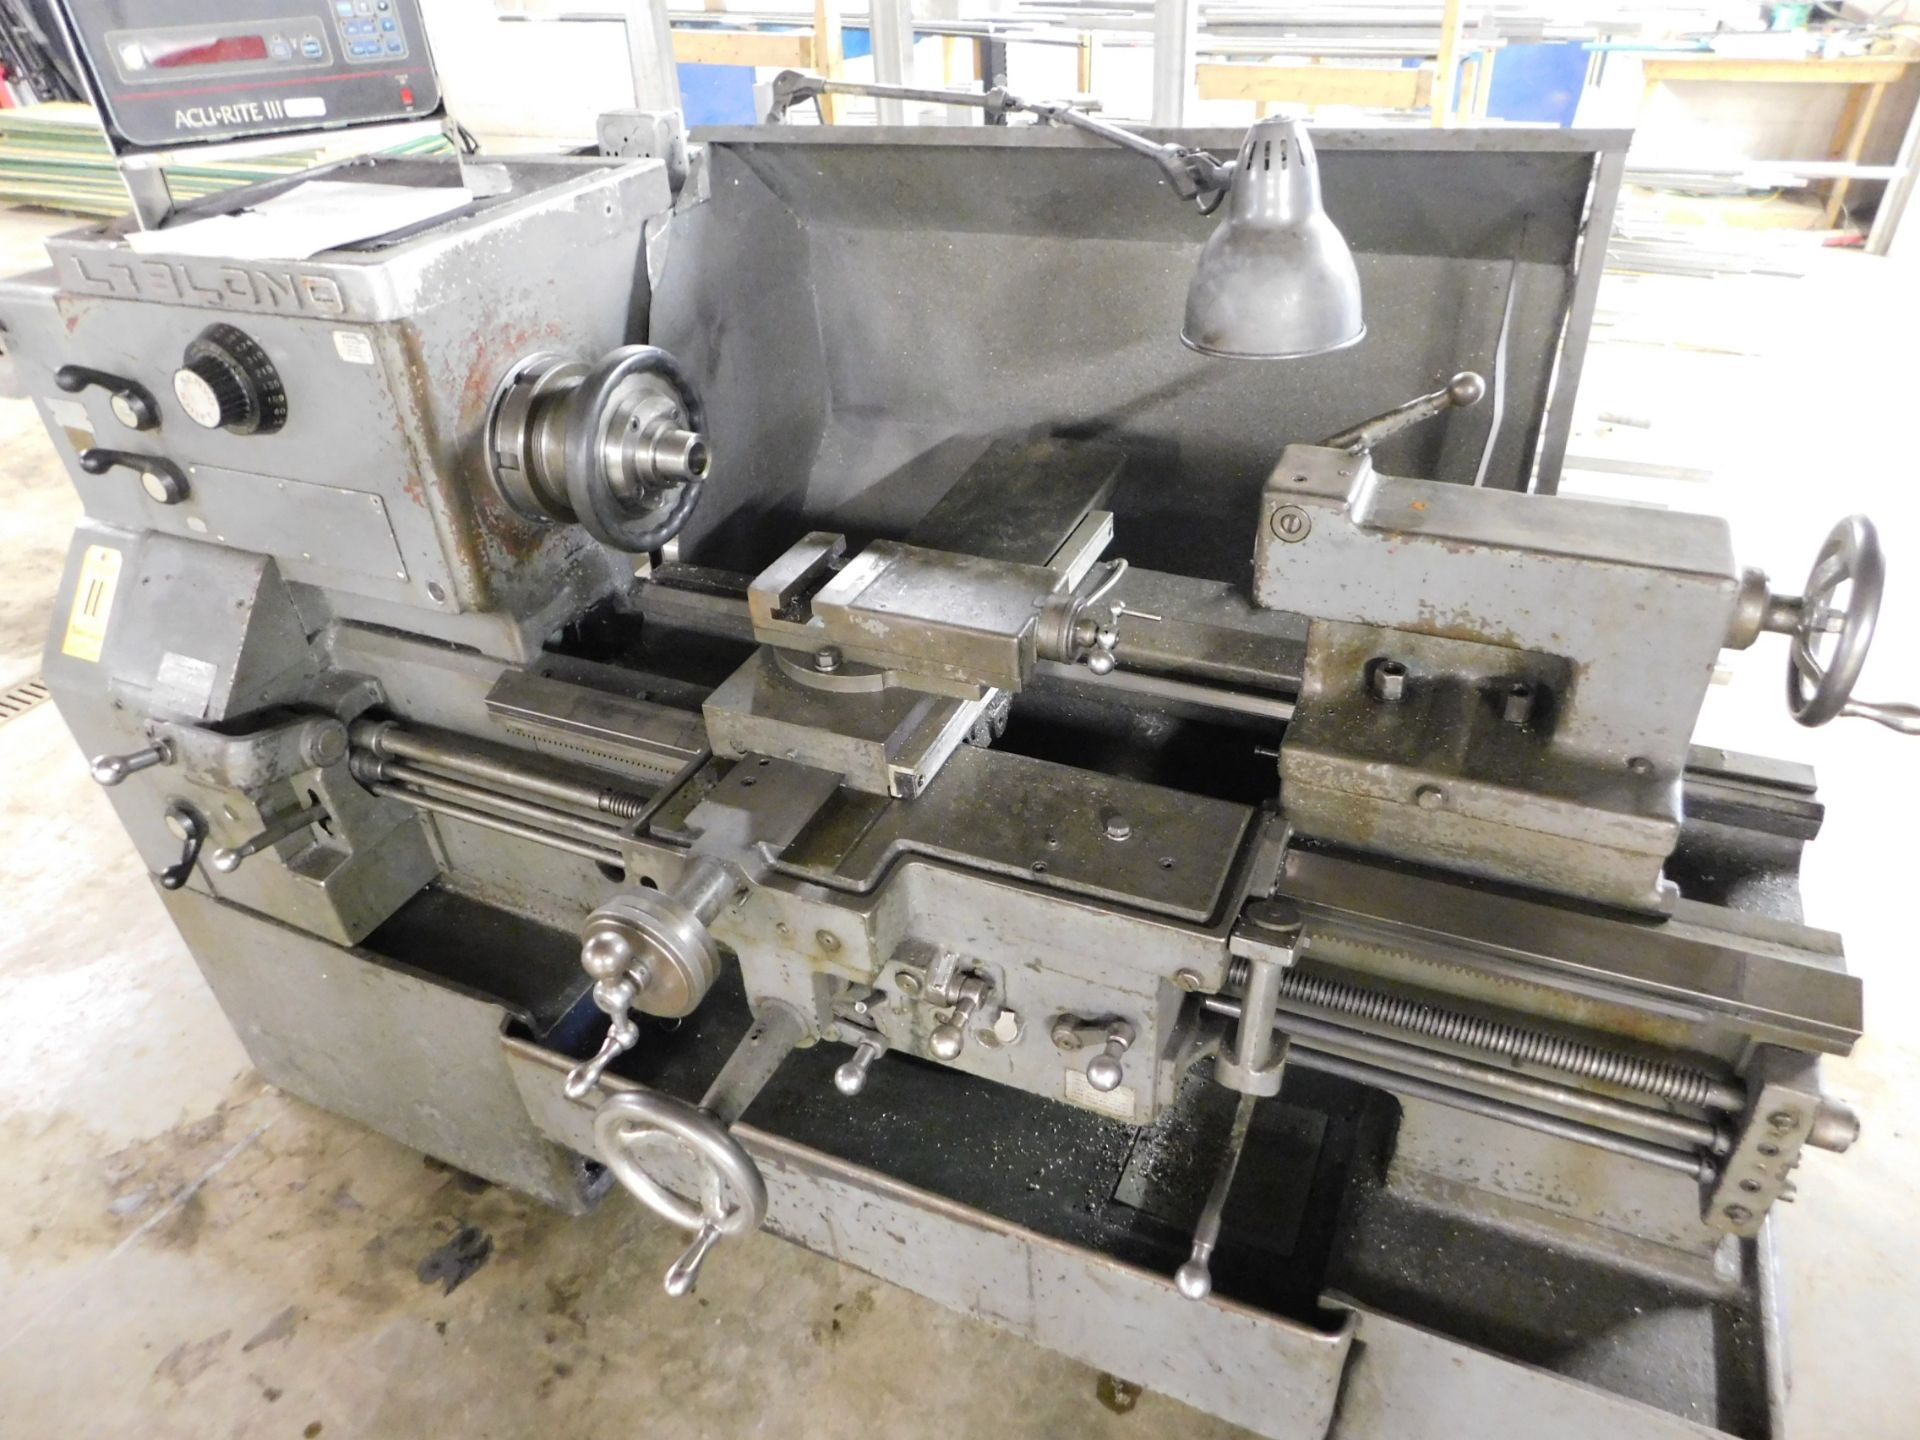 "Lot 11 - Leblond 19"" x 36"" ServoShift Toolroom Lathe, SN 5E-345, 5C Spindle Nose Collet Chuck, 10"" 6-Jaw"